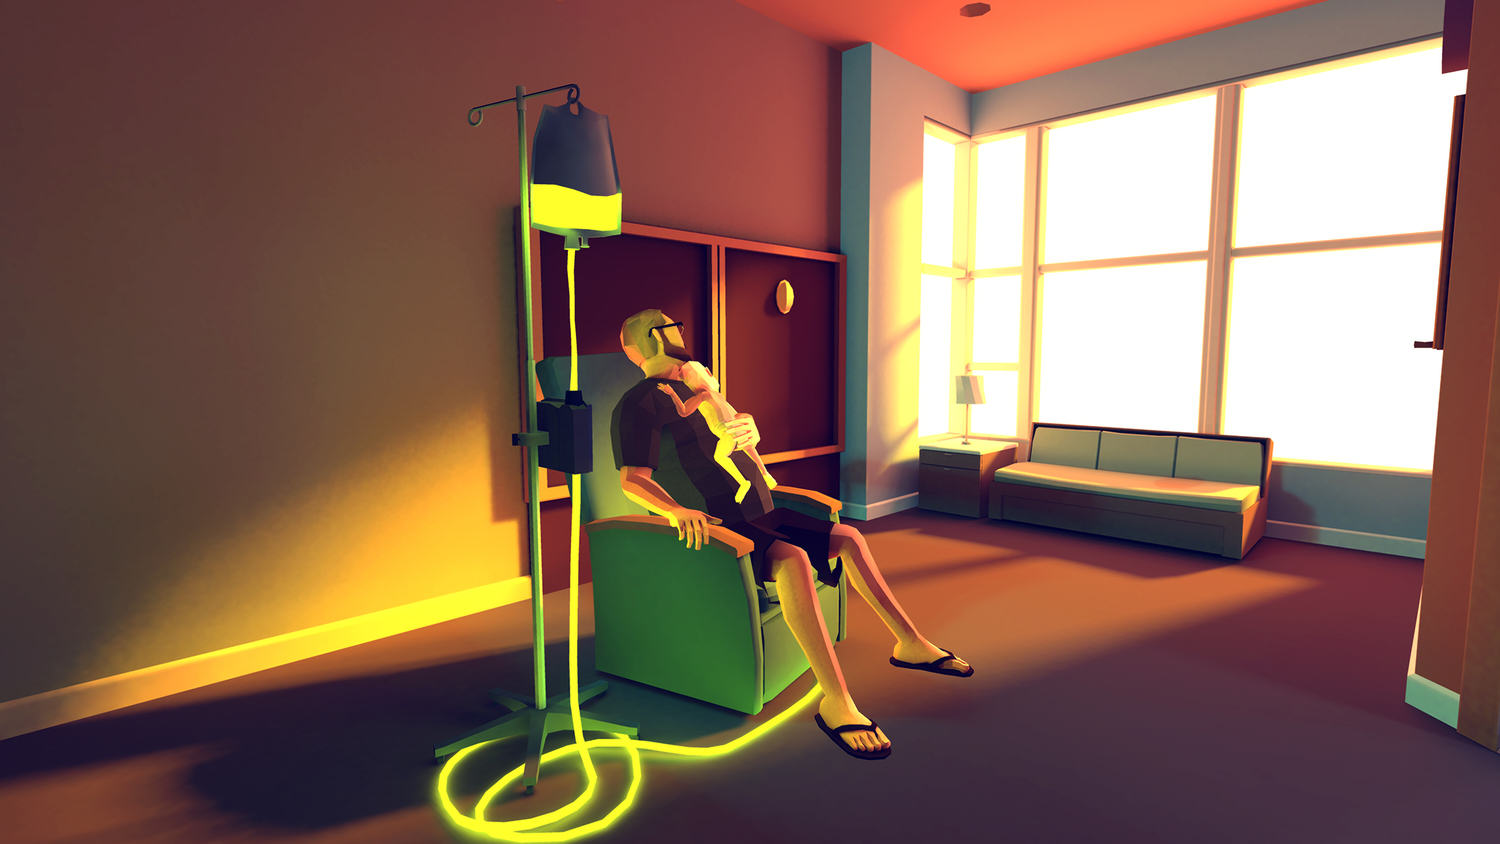 green drip Parents Make Heartbreaking Video Game About Their Childs Terminal Cancer